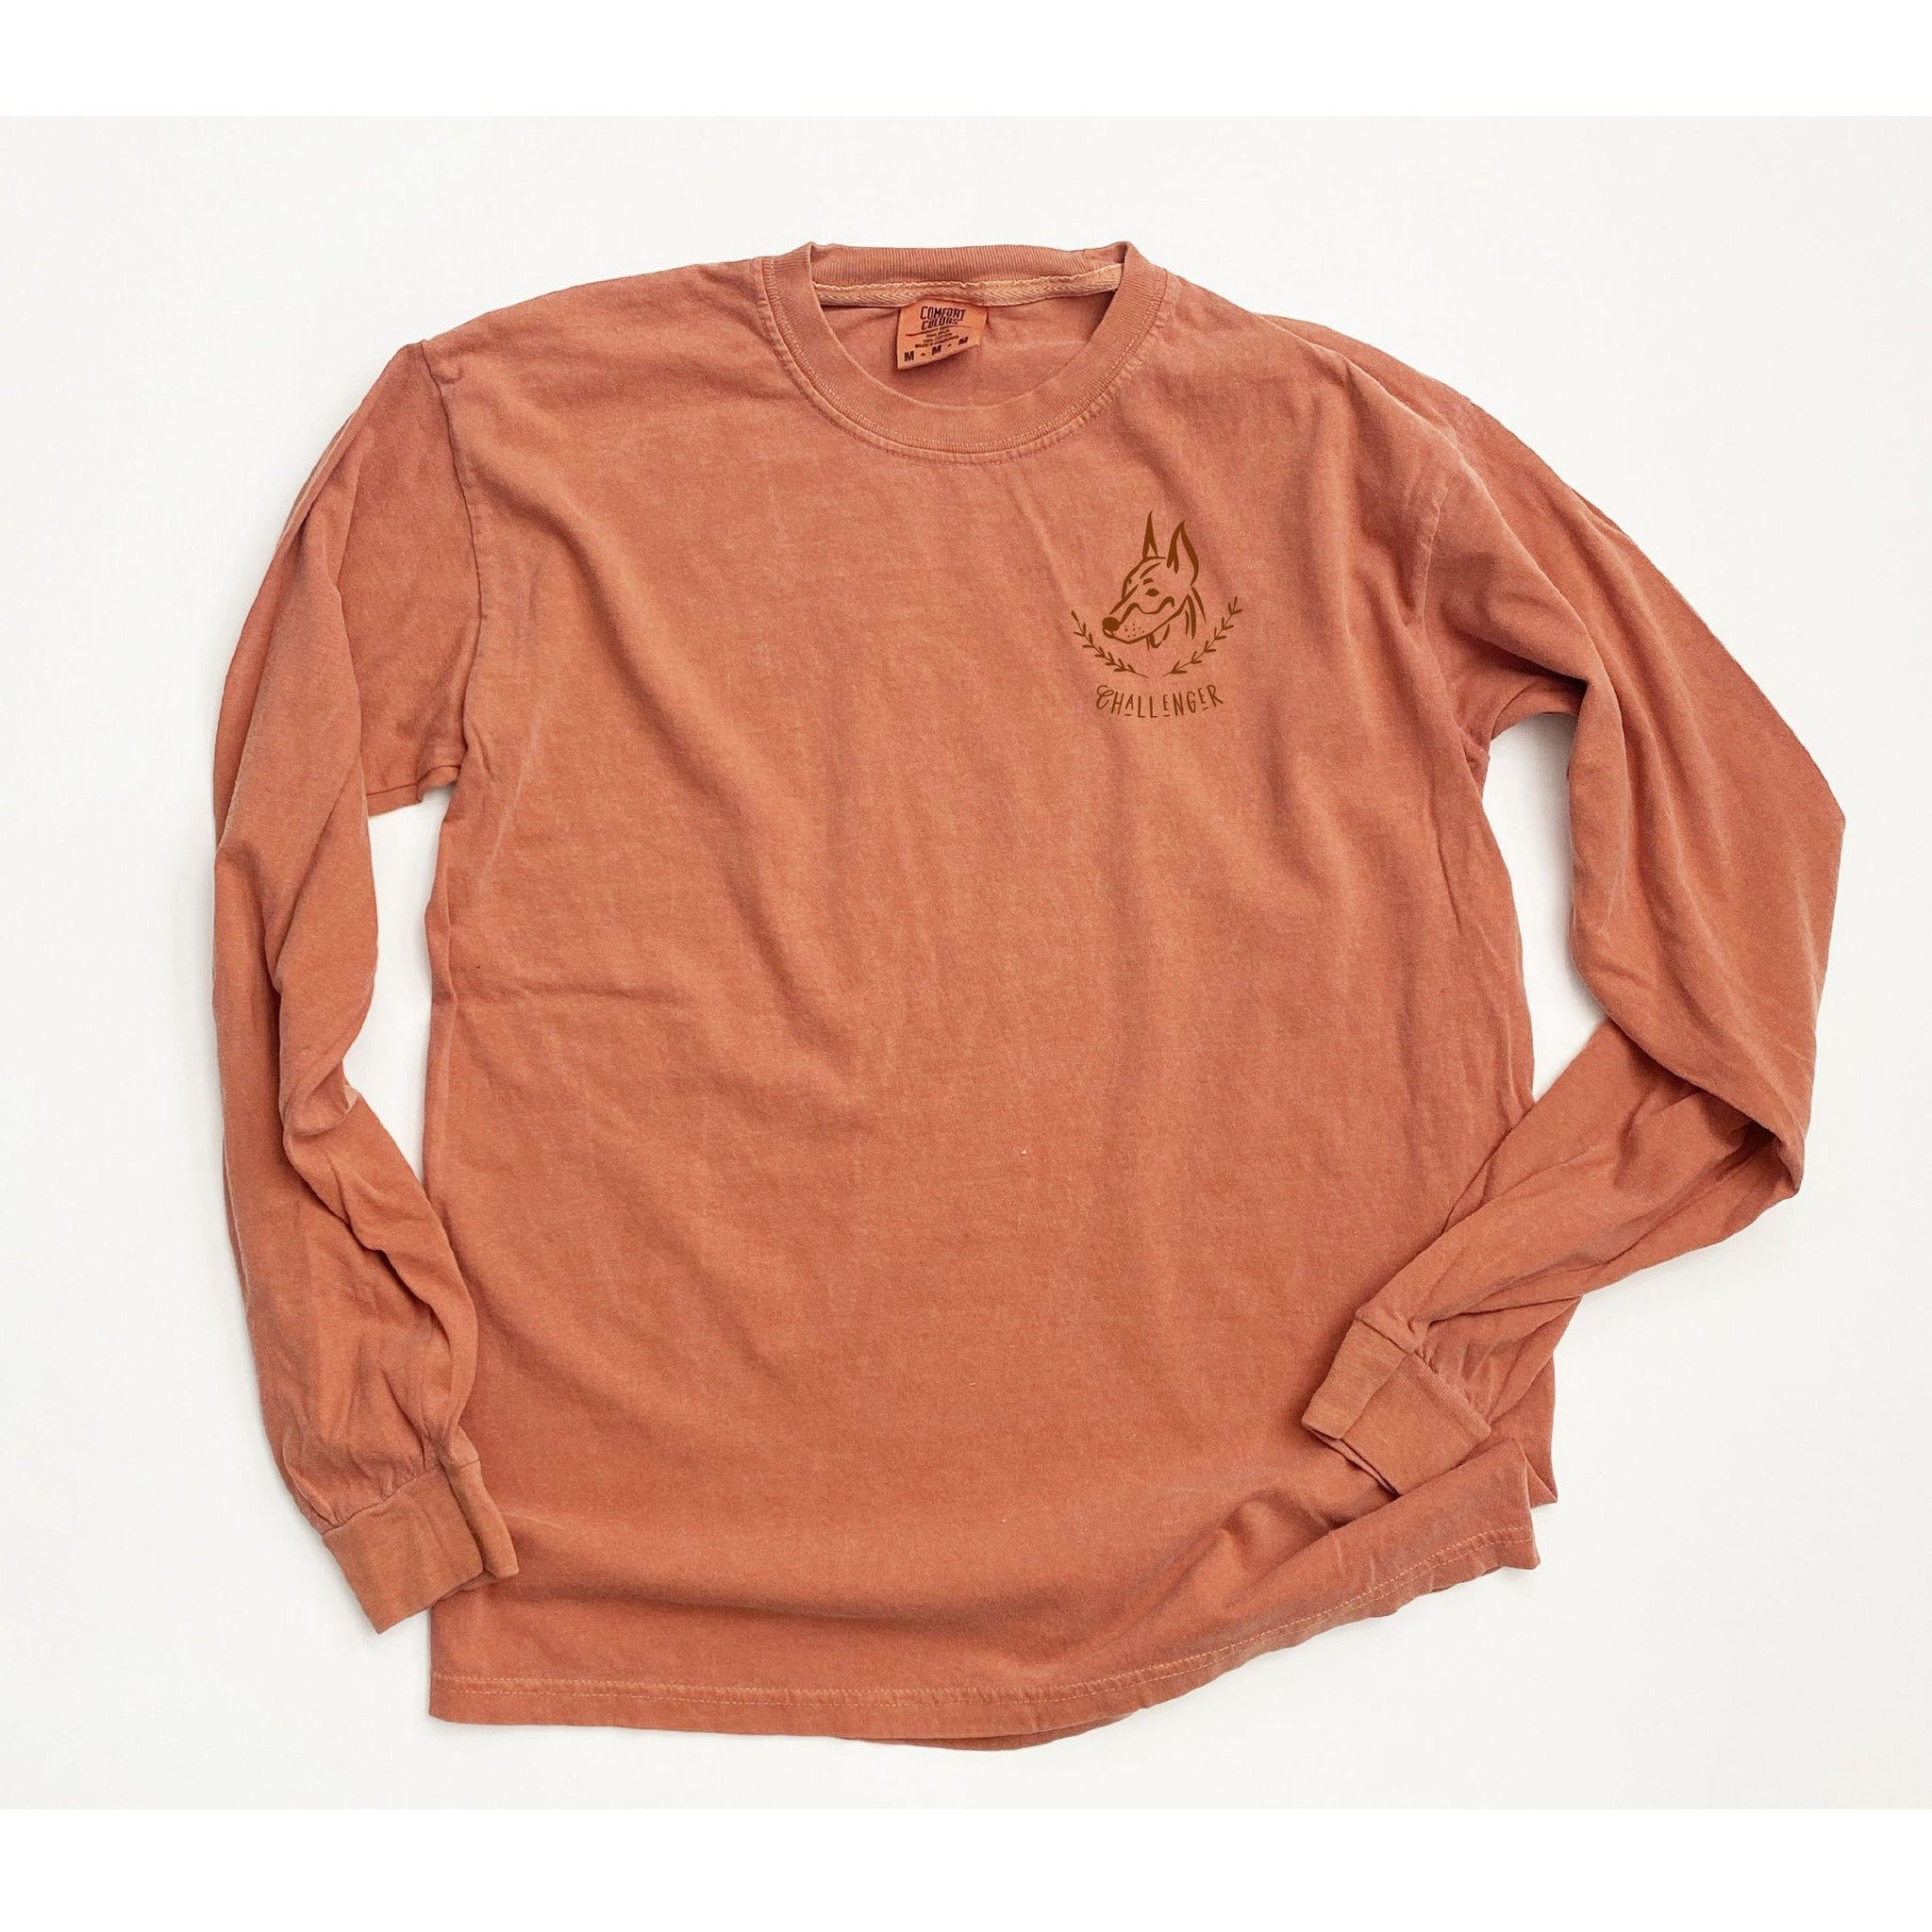 Enneagram Dog Super Soft Long Sleeve Tee in Spice - The First Snow